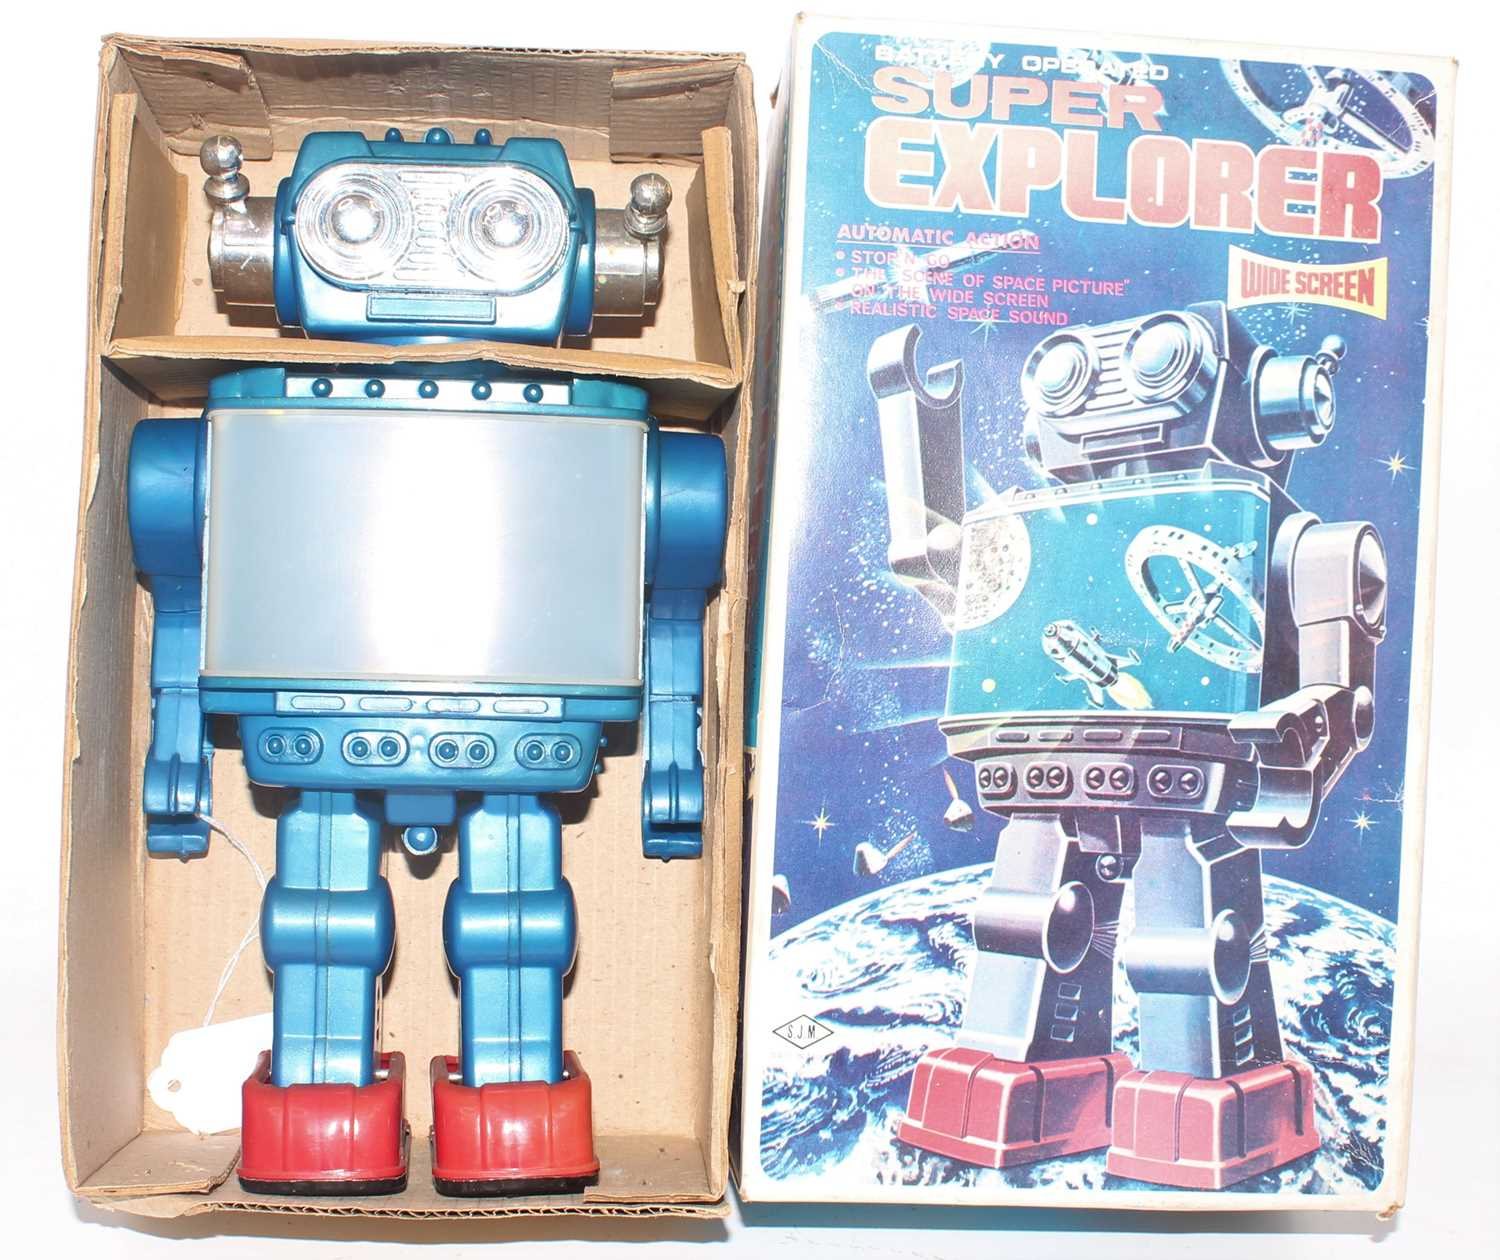 A Sunny Toys of Taiwan battery operated Super Explorer Action Robot comprising of plastic battery-